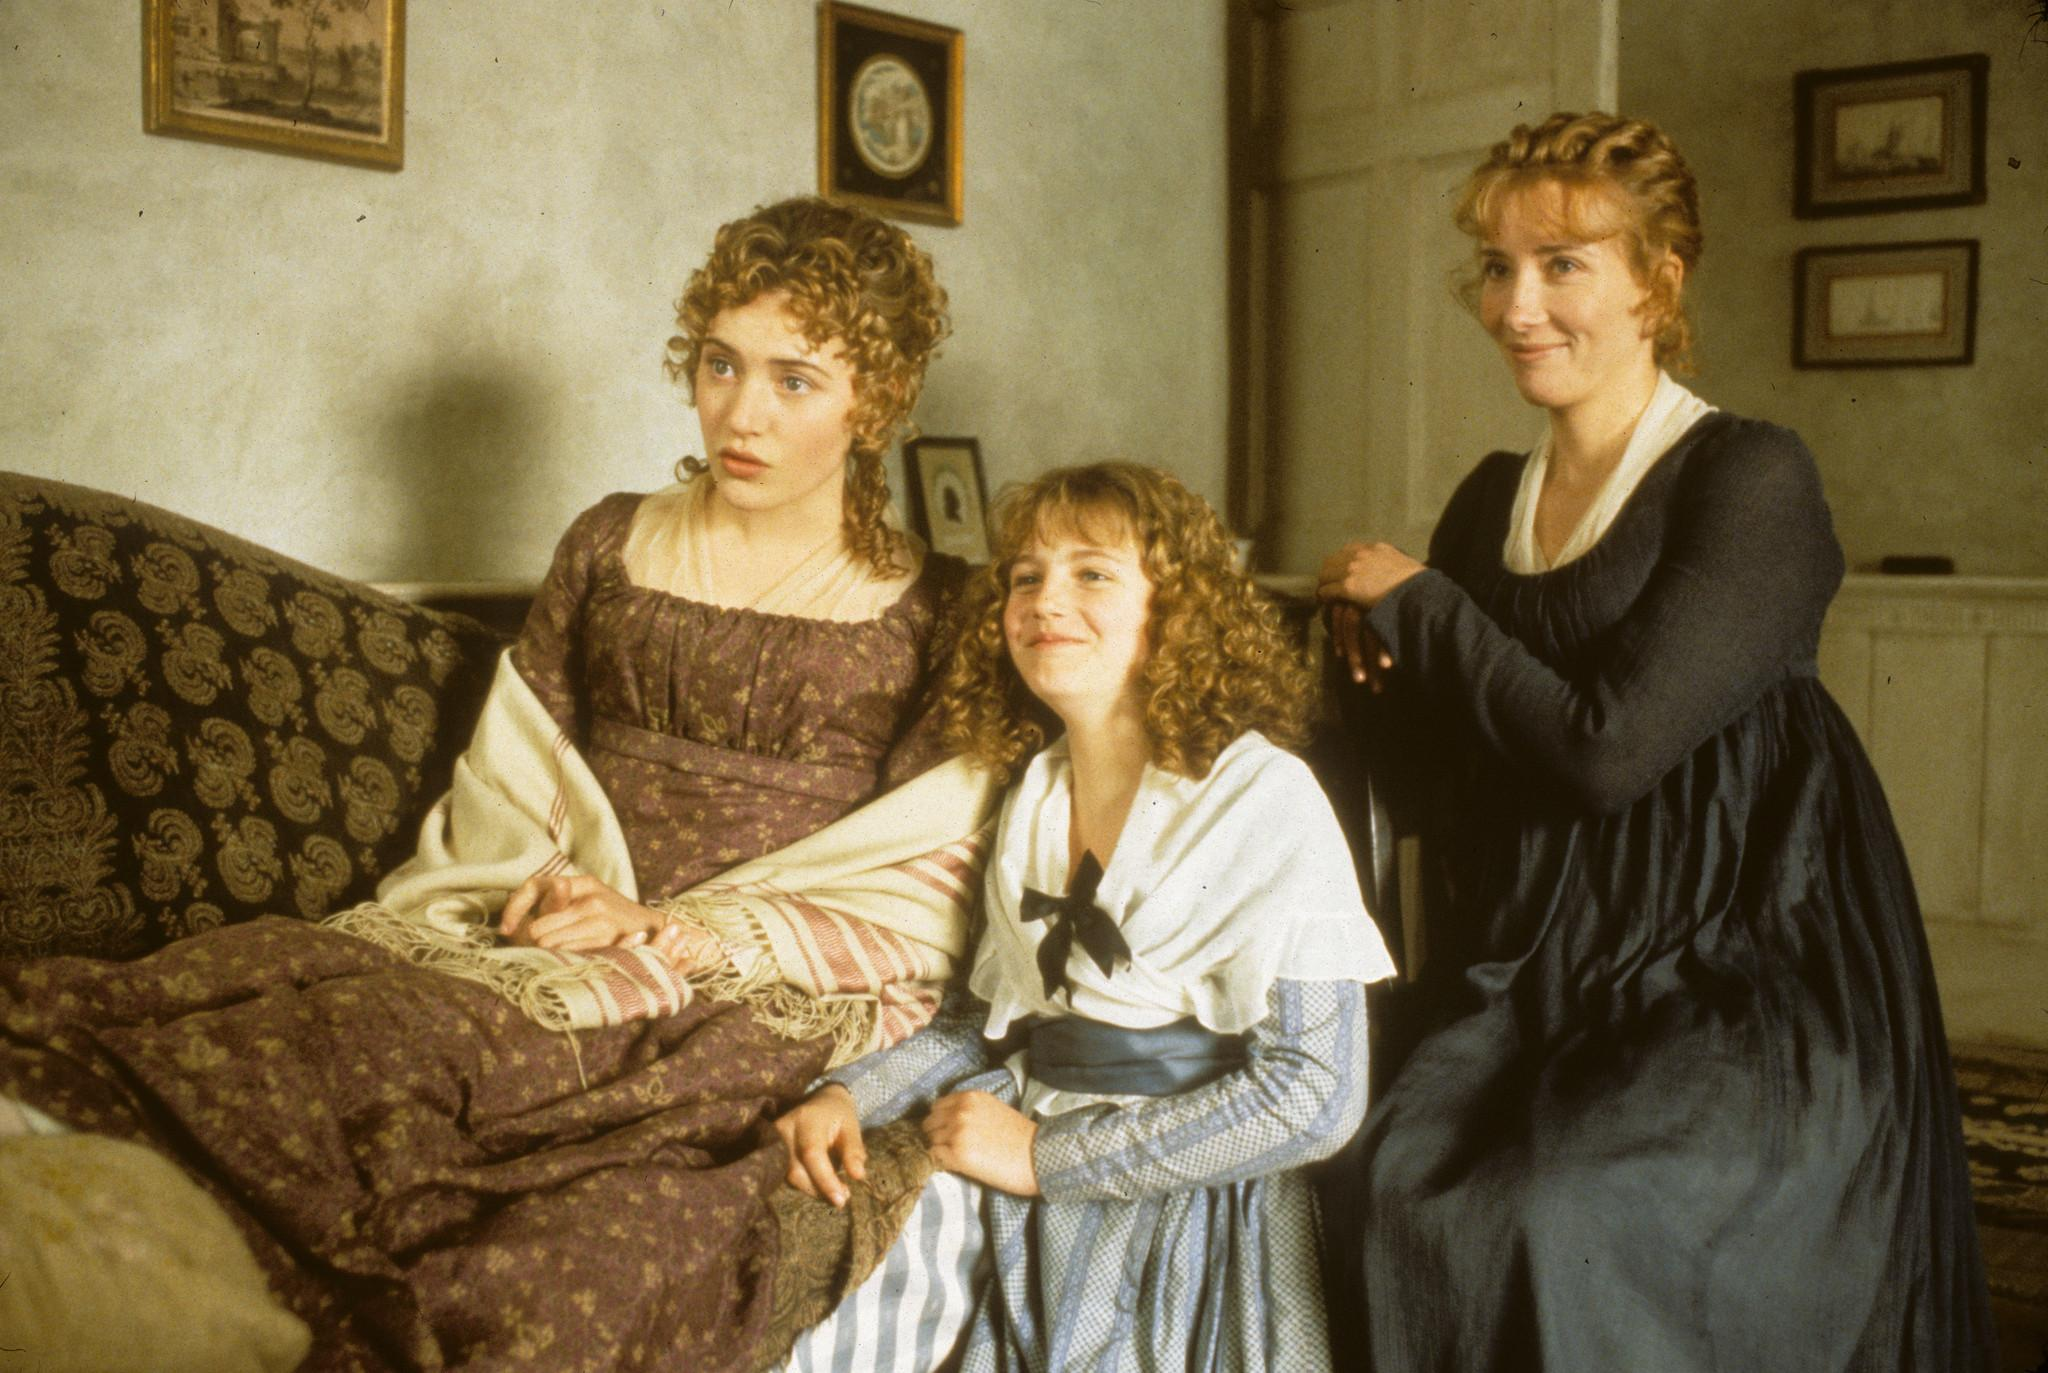 Marianne, Margaret, and Elinor Dashwood